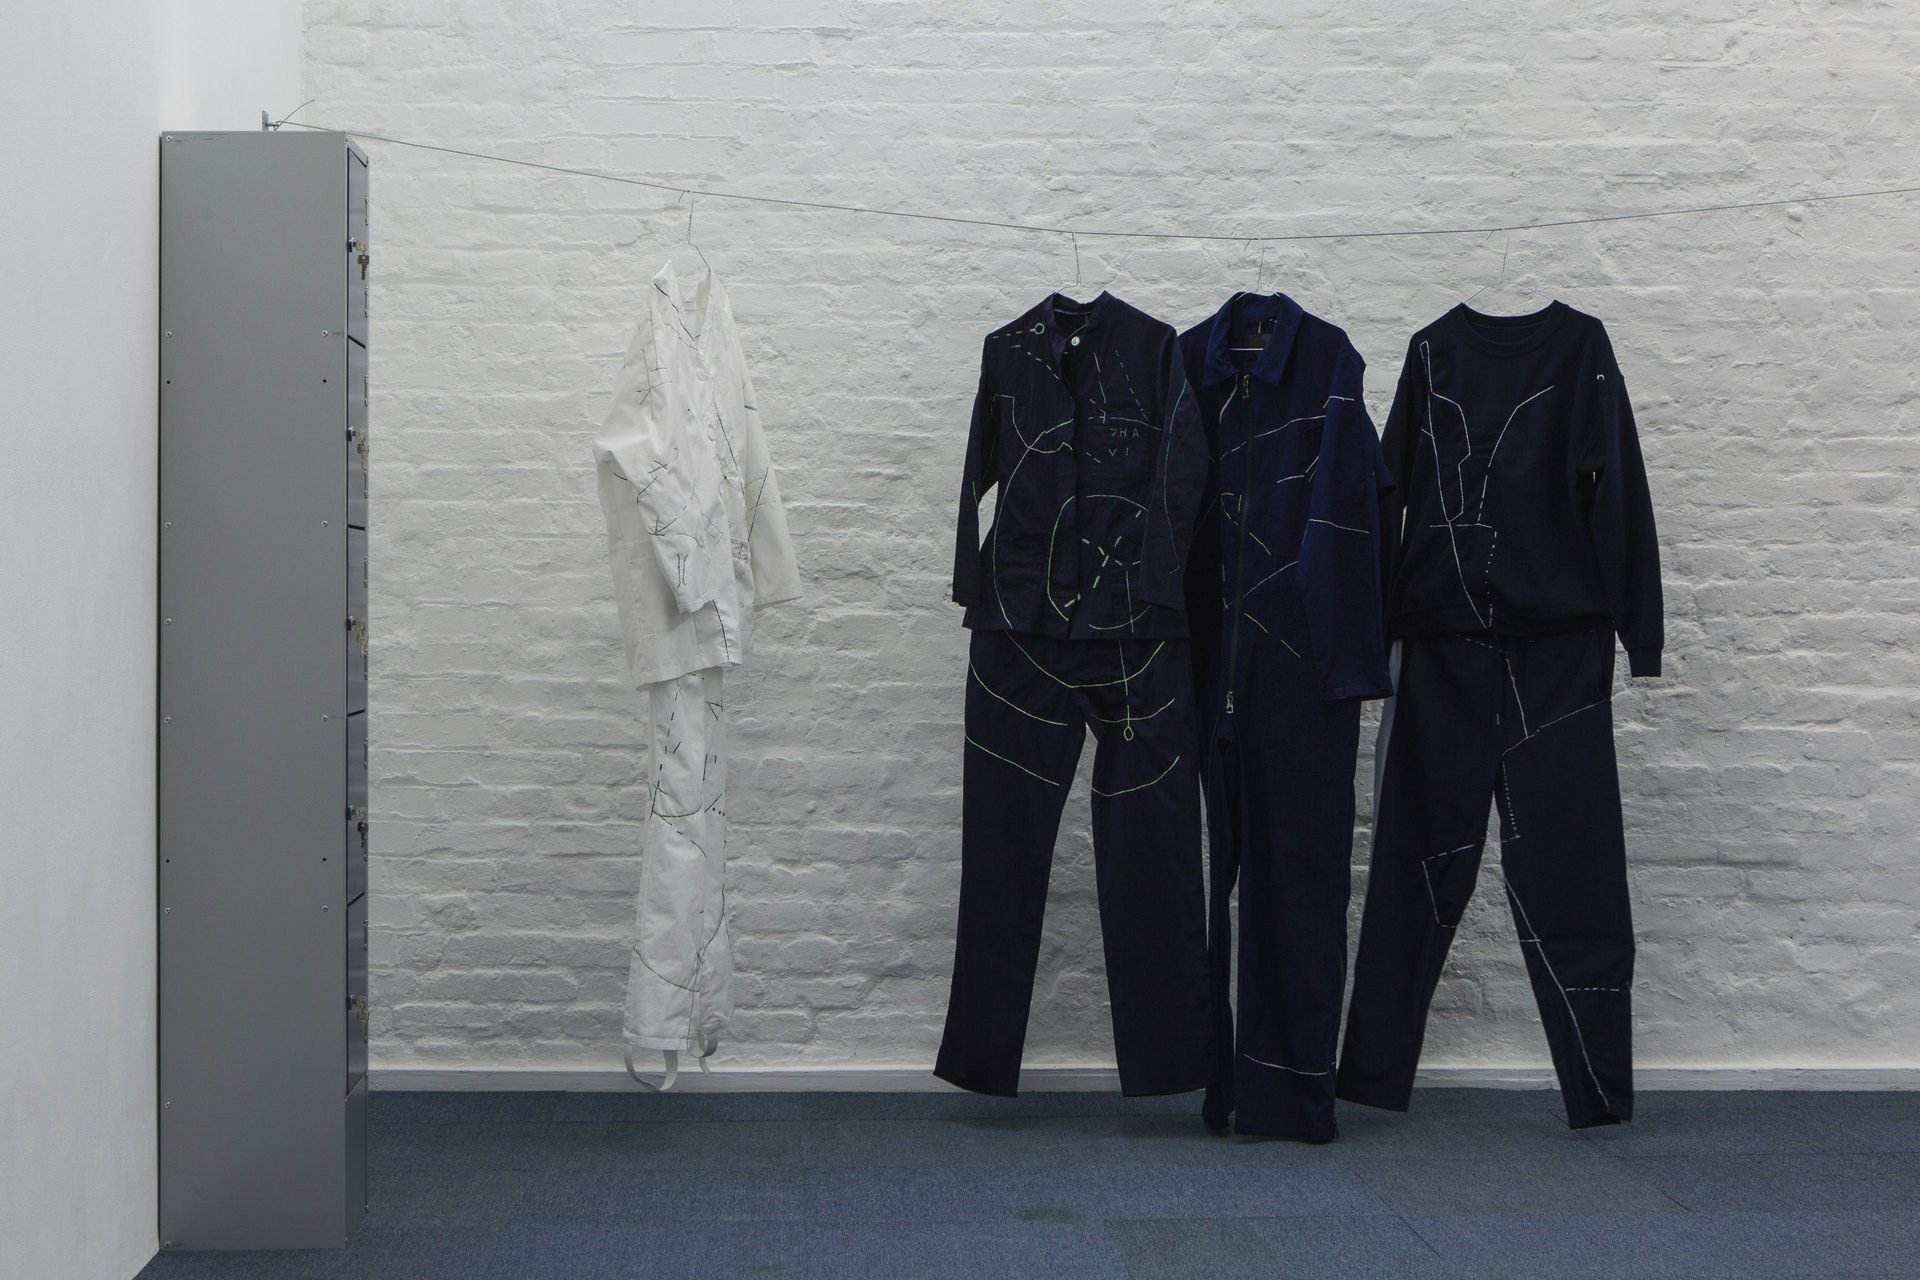 Angharad Williams and Mathis Gasser, 'Navigator Suits', 2018, Hergest:Nant, Cell Project Space